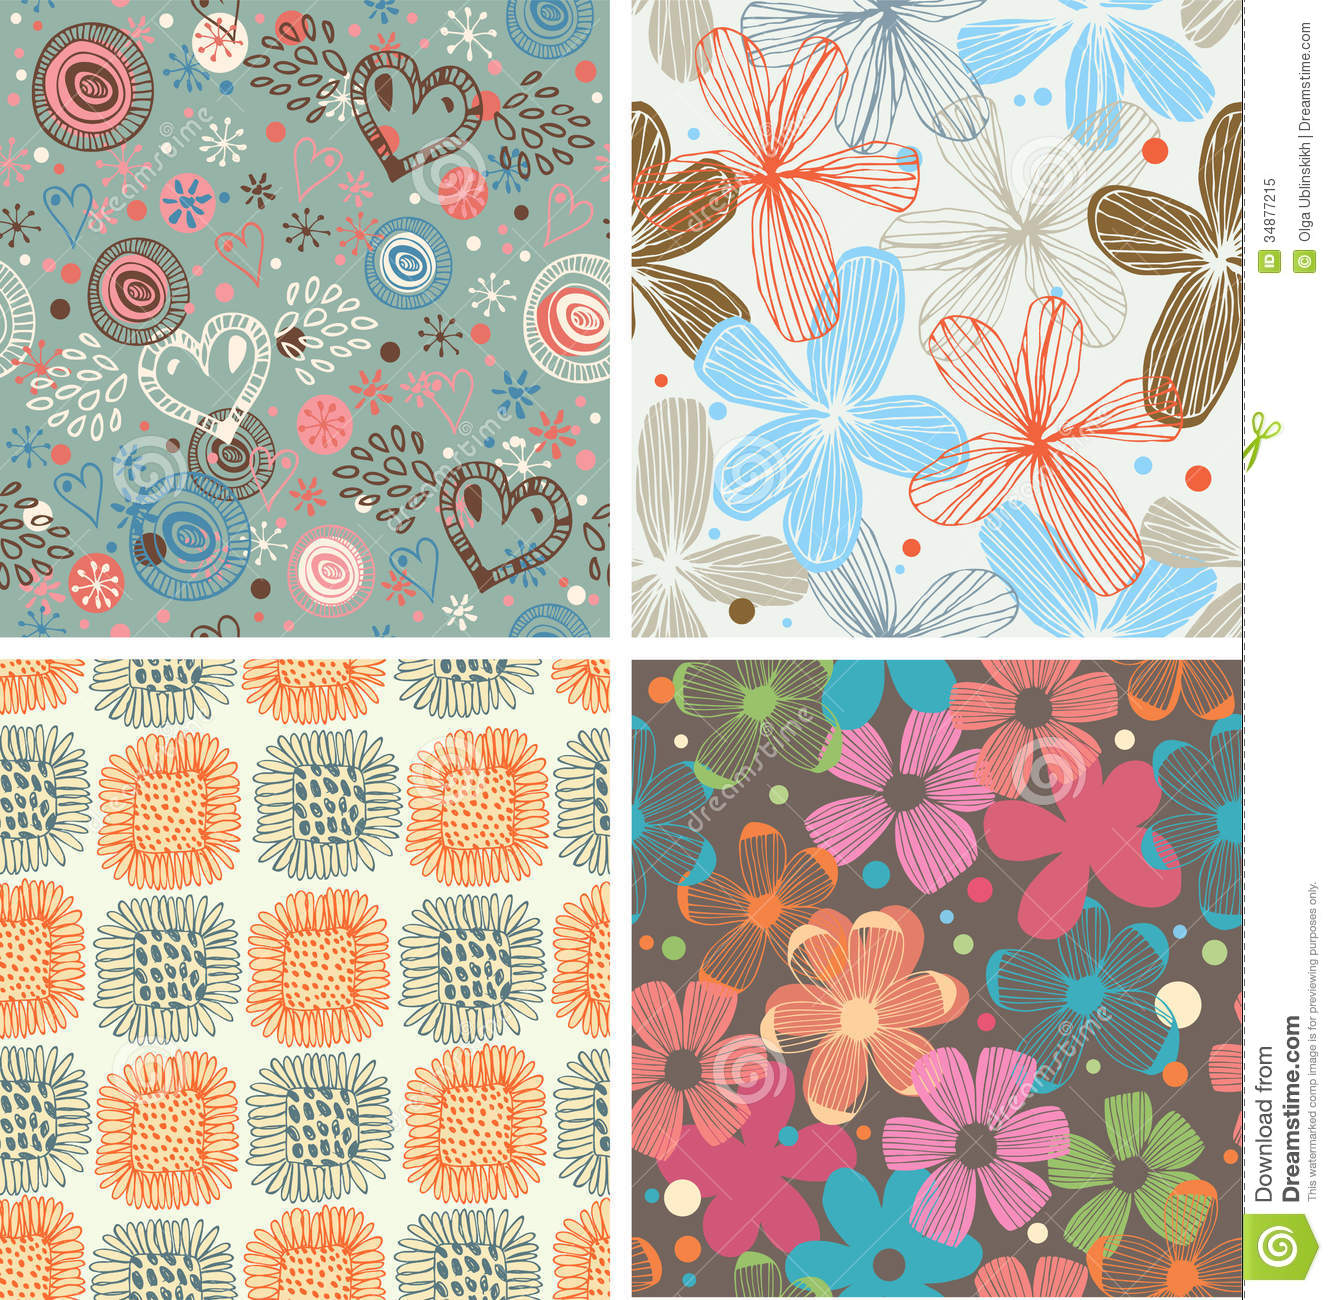 Cute collection of floral patterns Set of beautiful unusual backgrounds with flowers